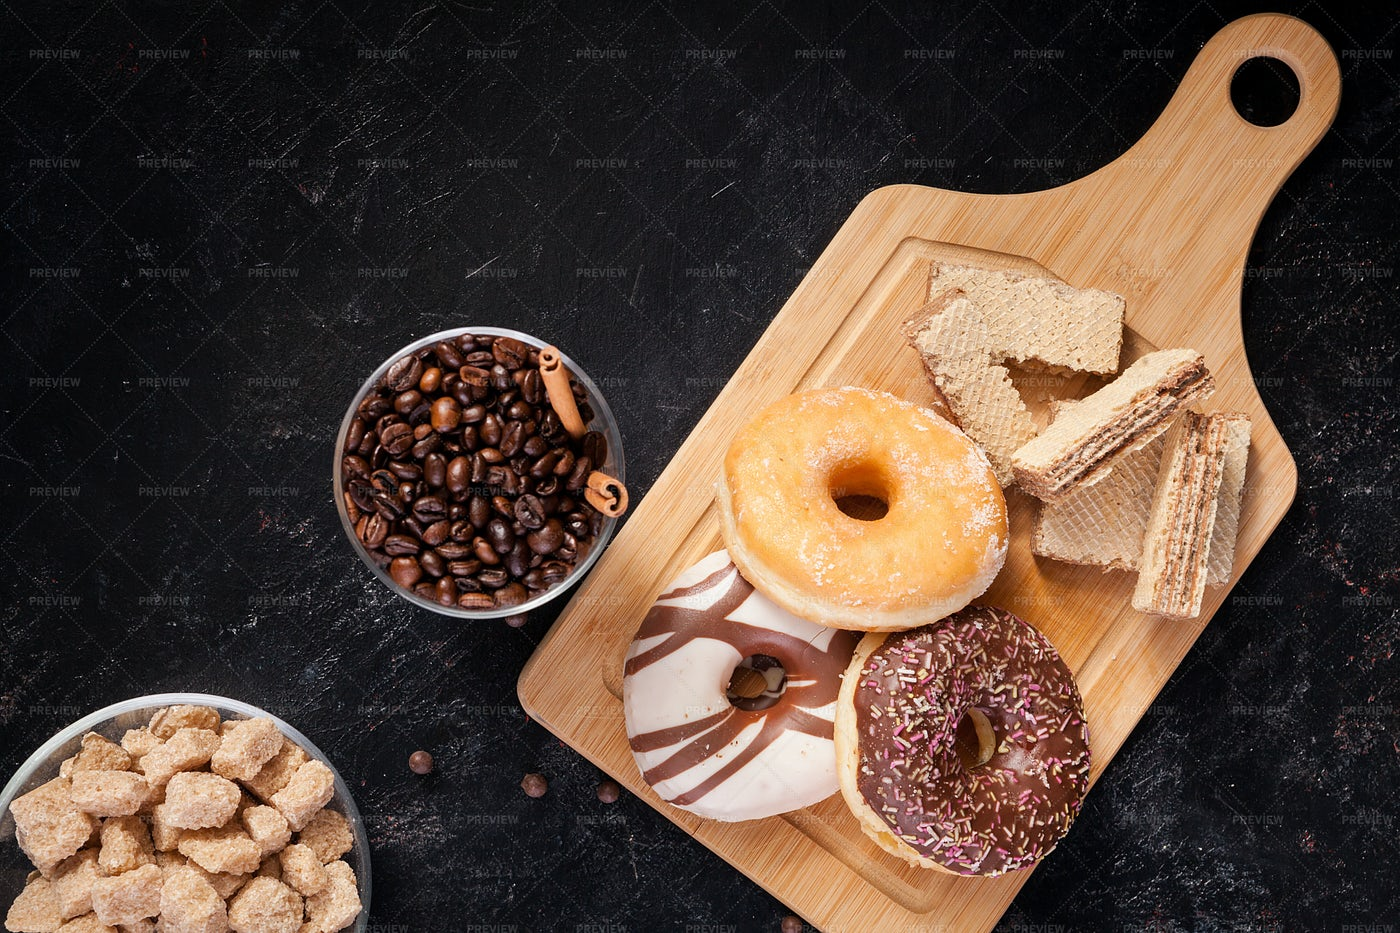 Sweets On Wooden Board: Stock Photos